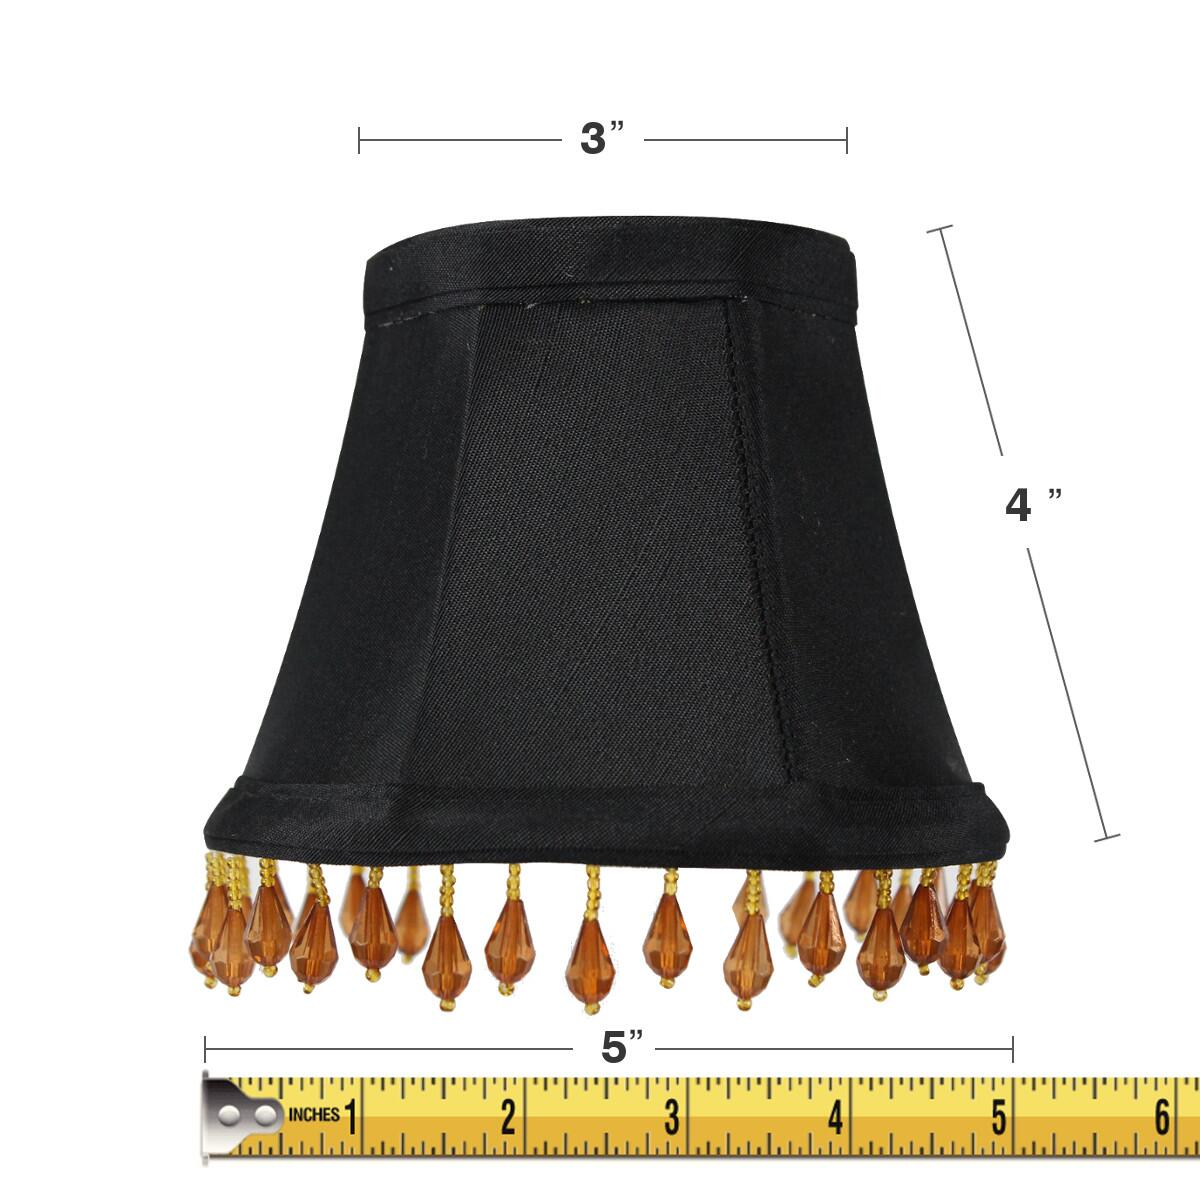 3x5x4 Candelabra Stretch with Gold Liner Amber Beads Clip-On Lampshade